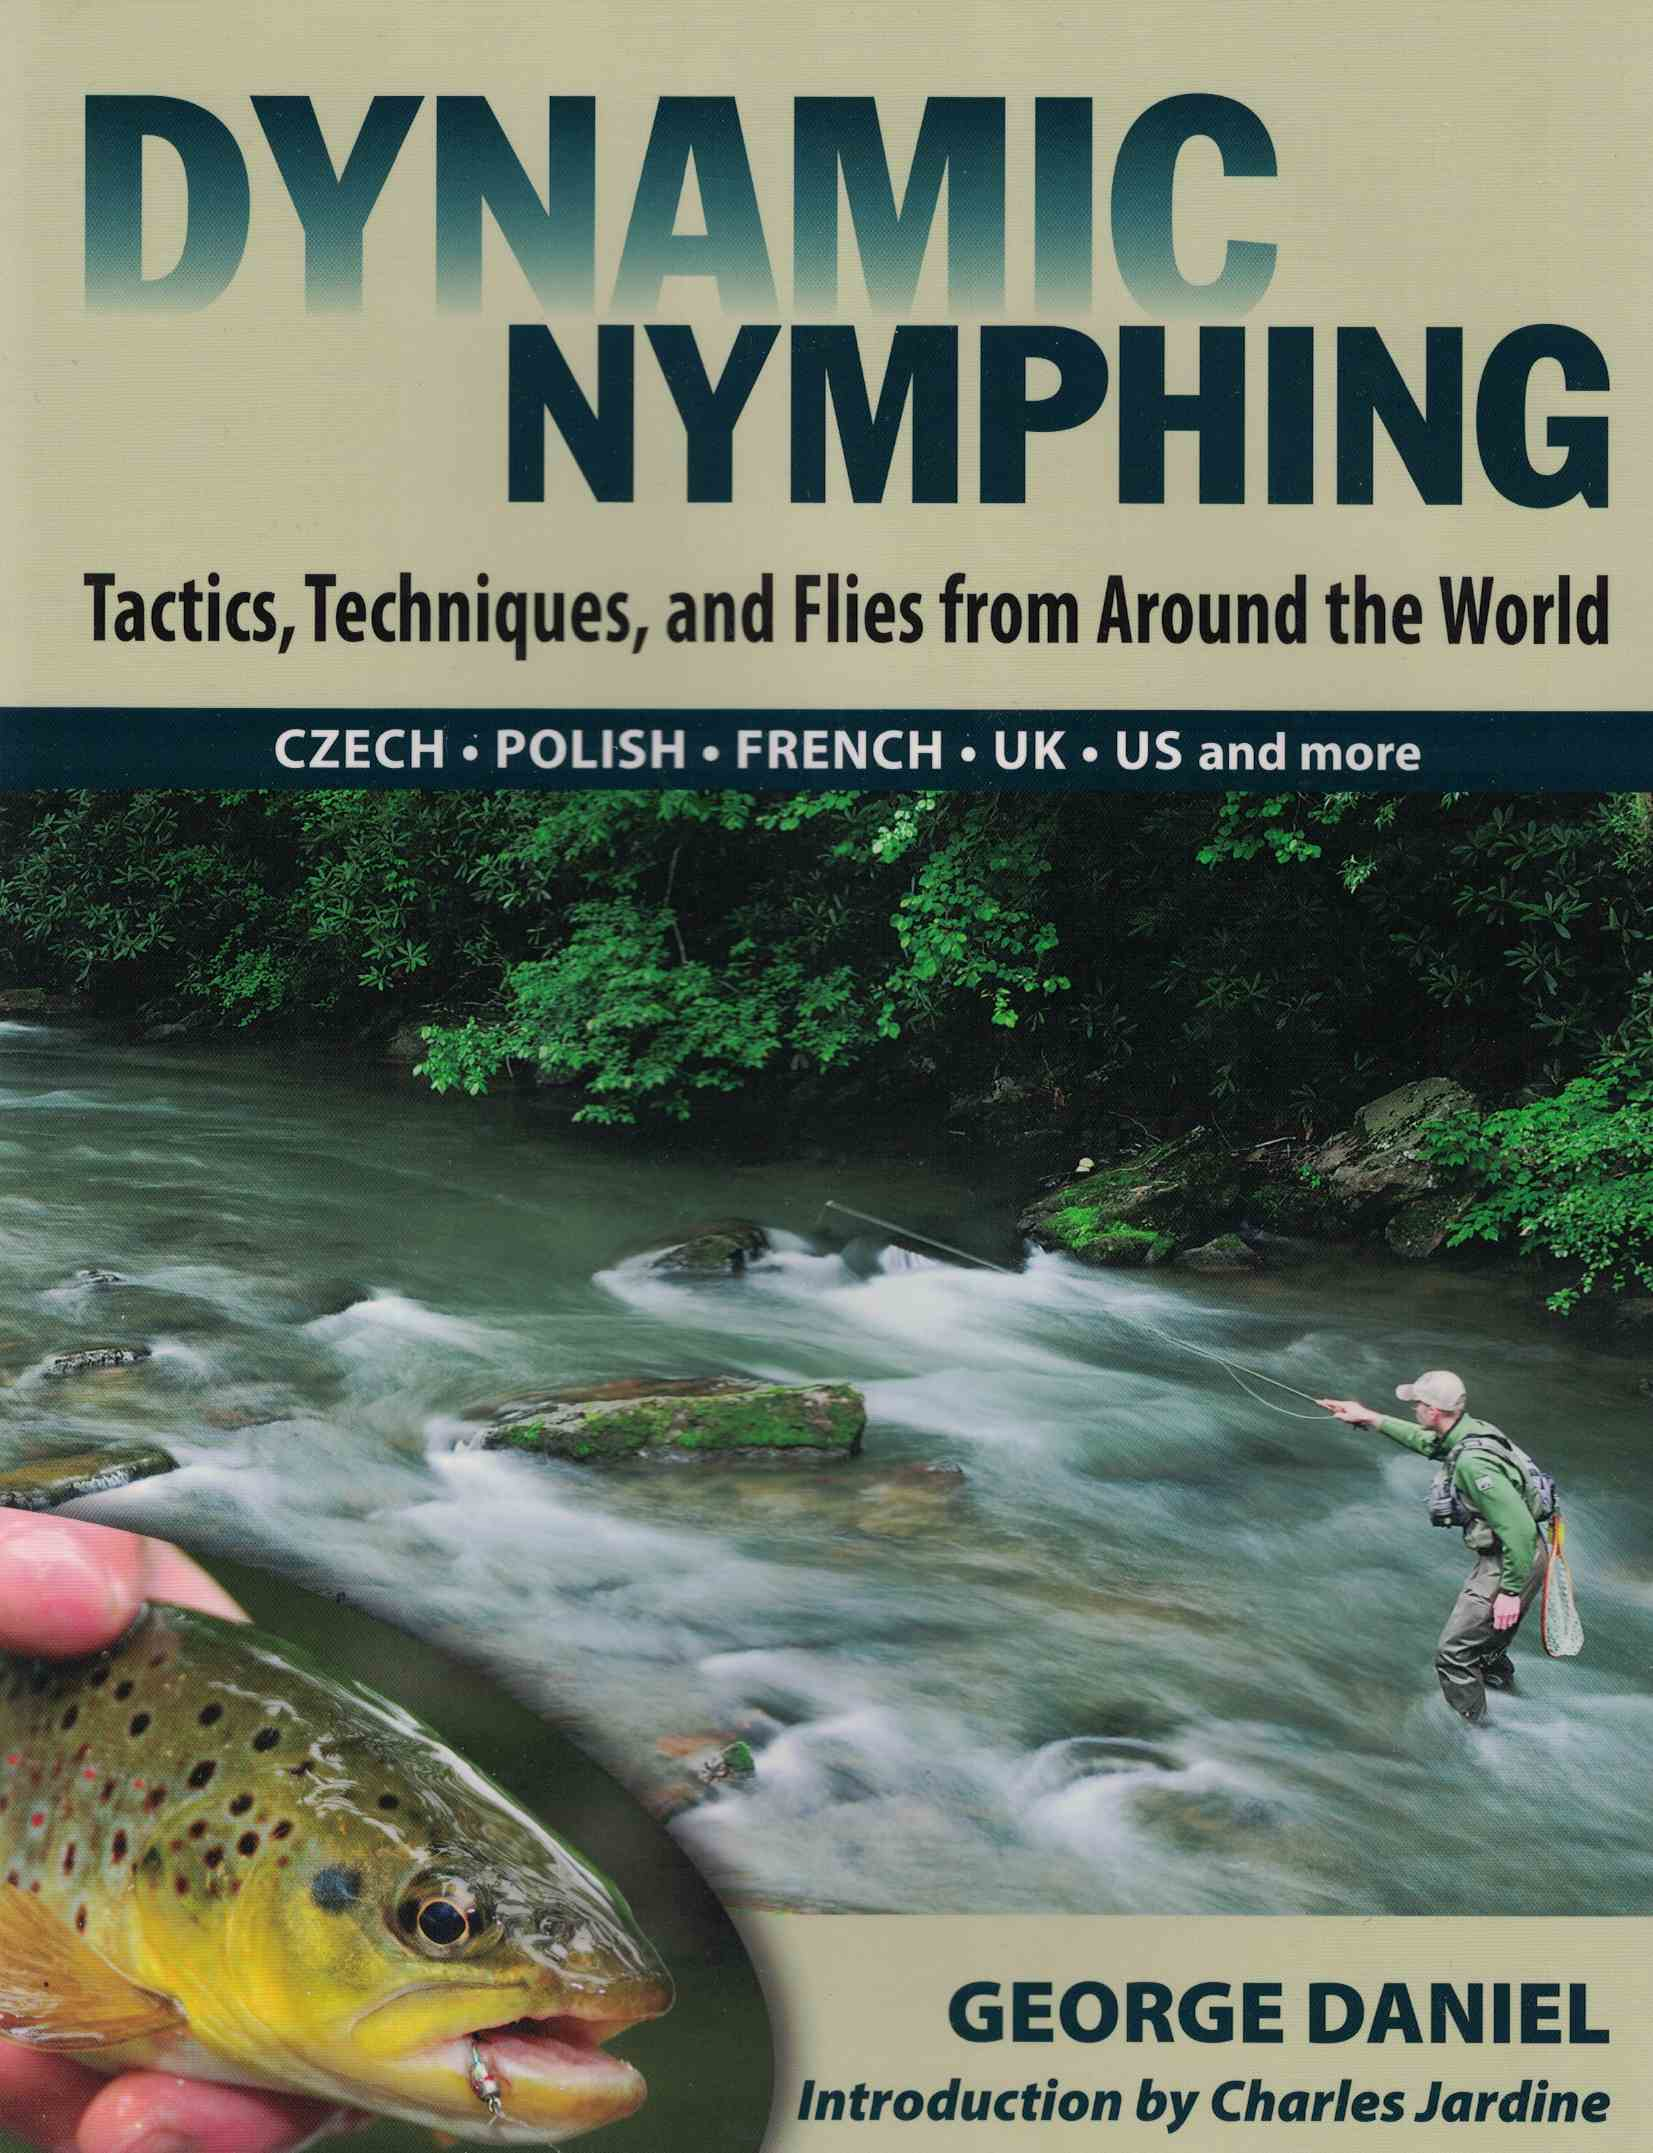 Image for Dynamic Nymphing: Tactics, Techniques, and Flies from Around the World